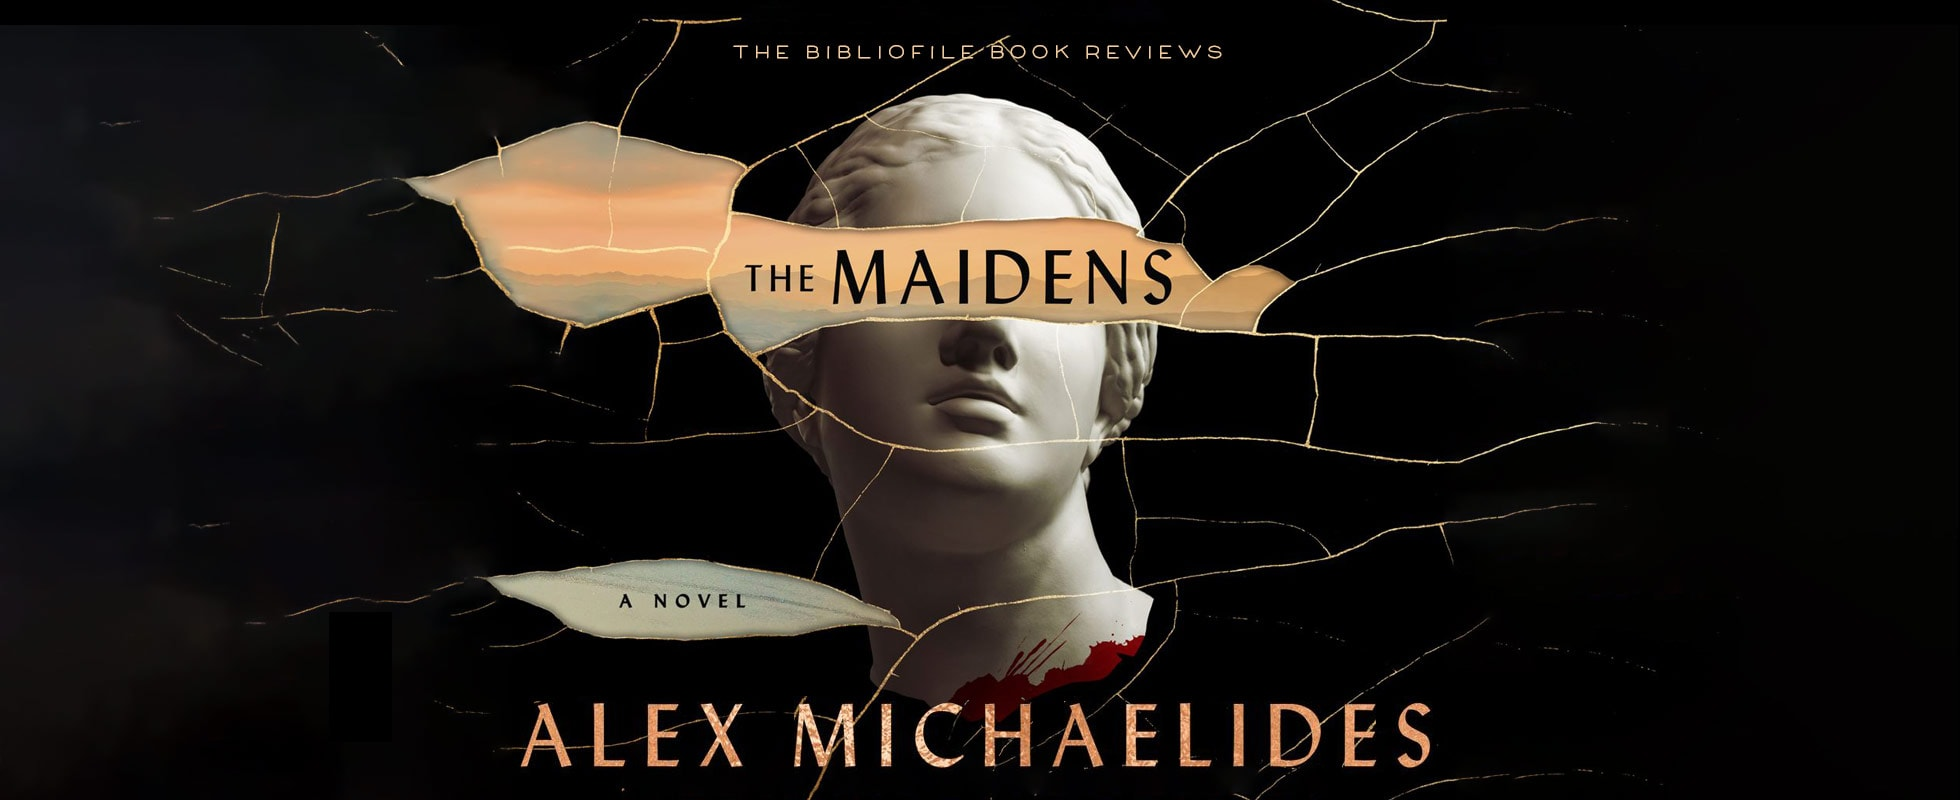 the maidens by alex michaelides book review summary synopsis recap plot